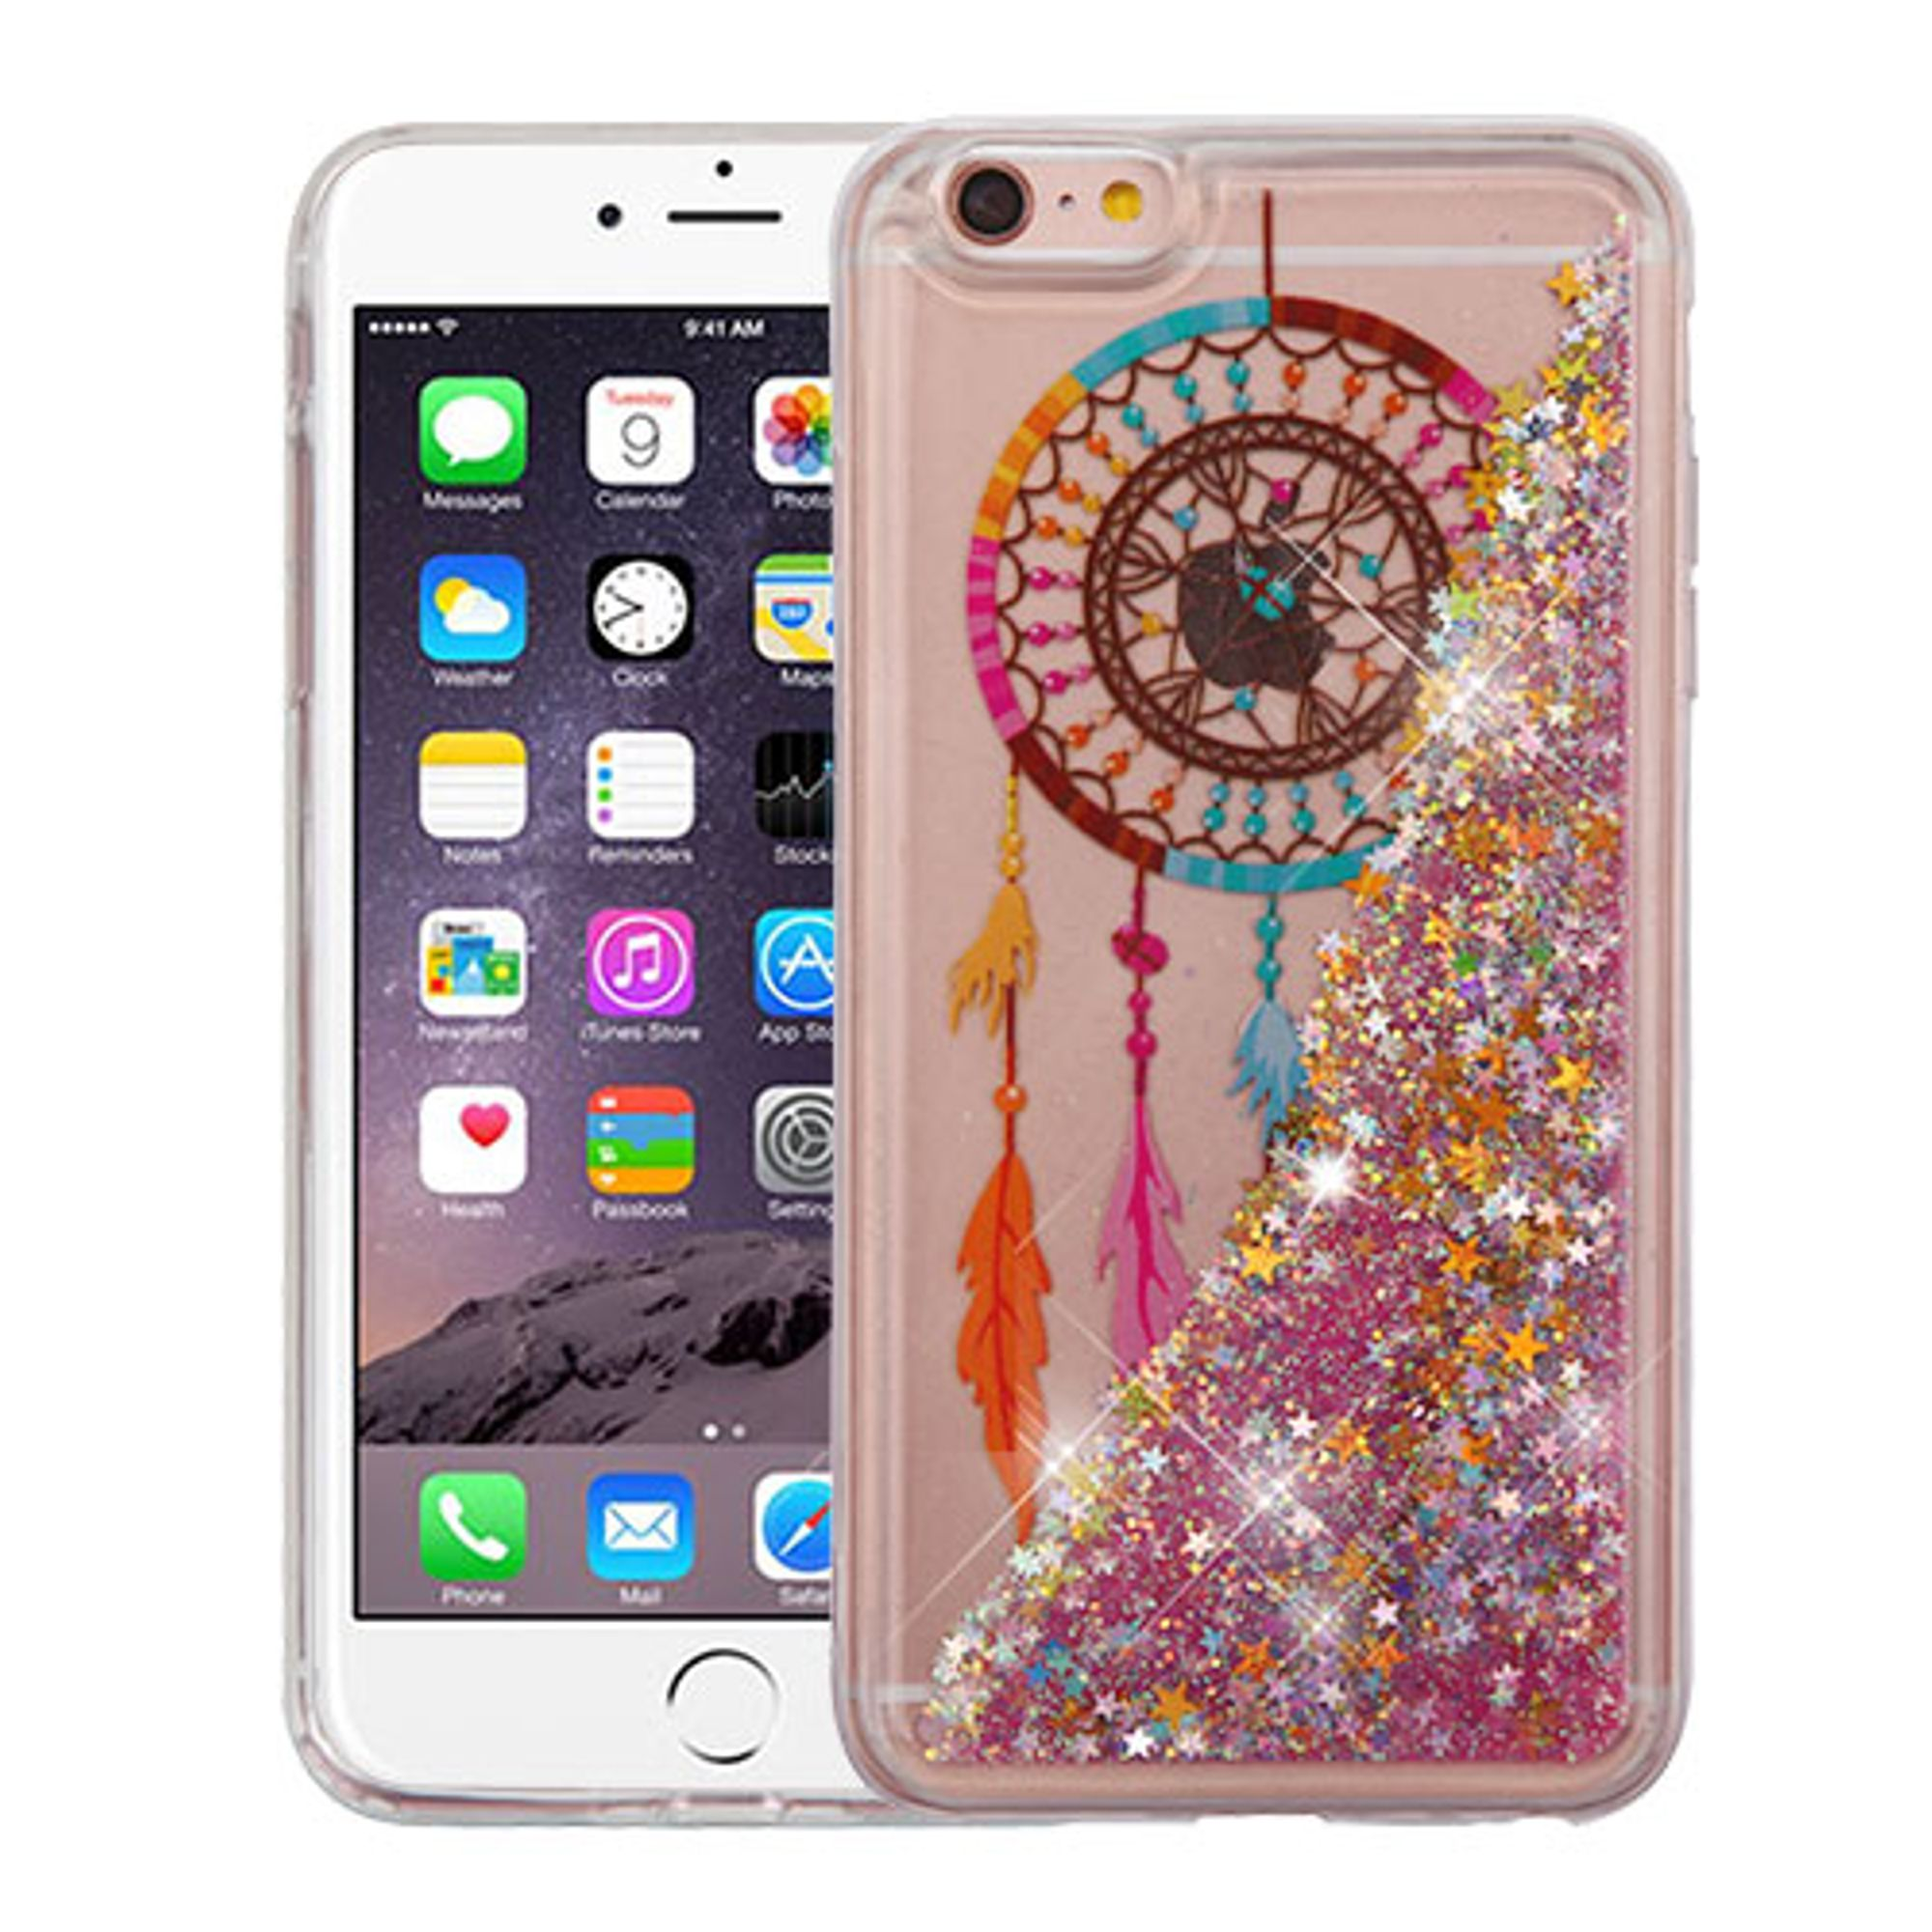 iPhone 6s plus case by Insten Luxury Quicksand Glitter Liquid Floating Sparkle Bling Fashion Phone Case Cover for Apple iPhone 6s plus / 6 plus